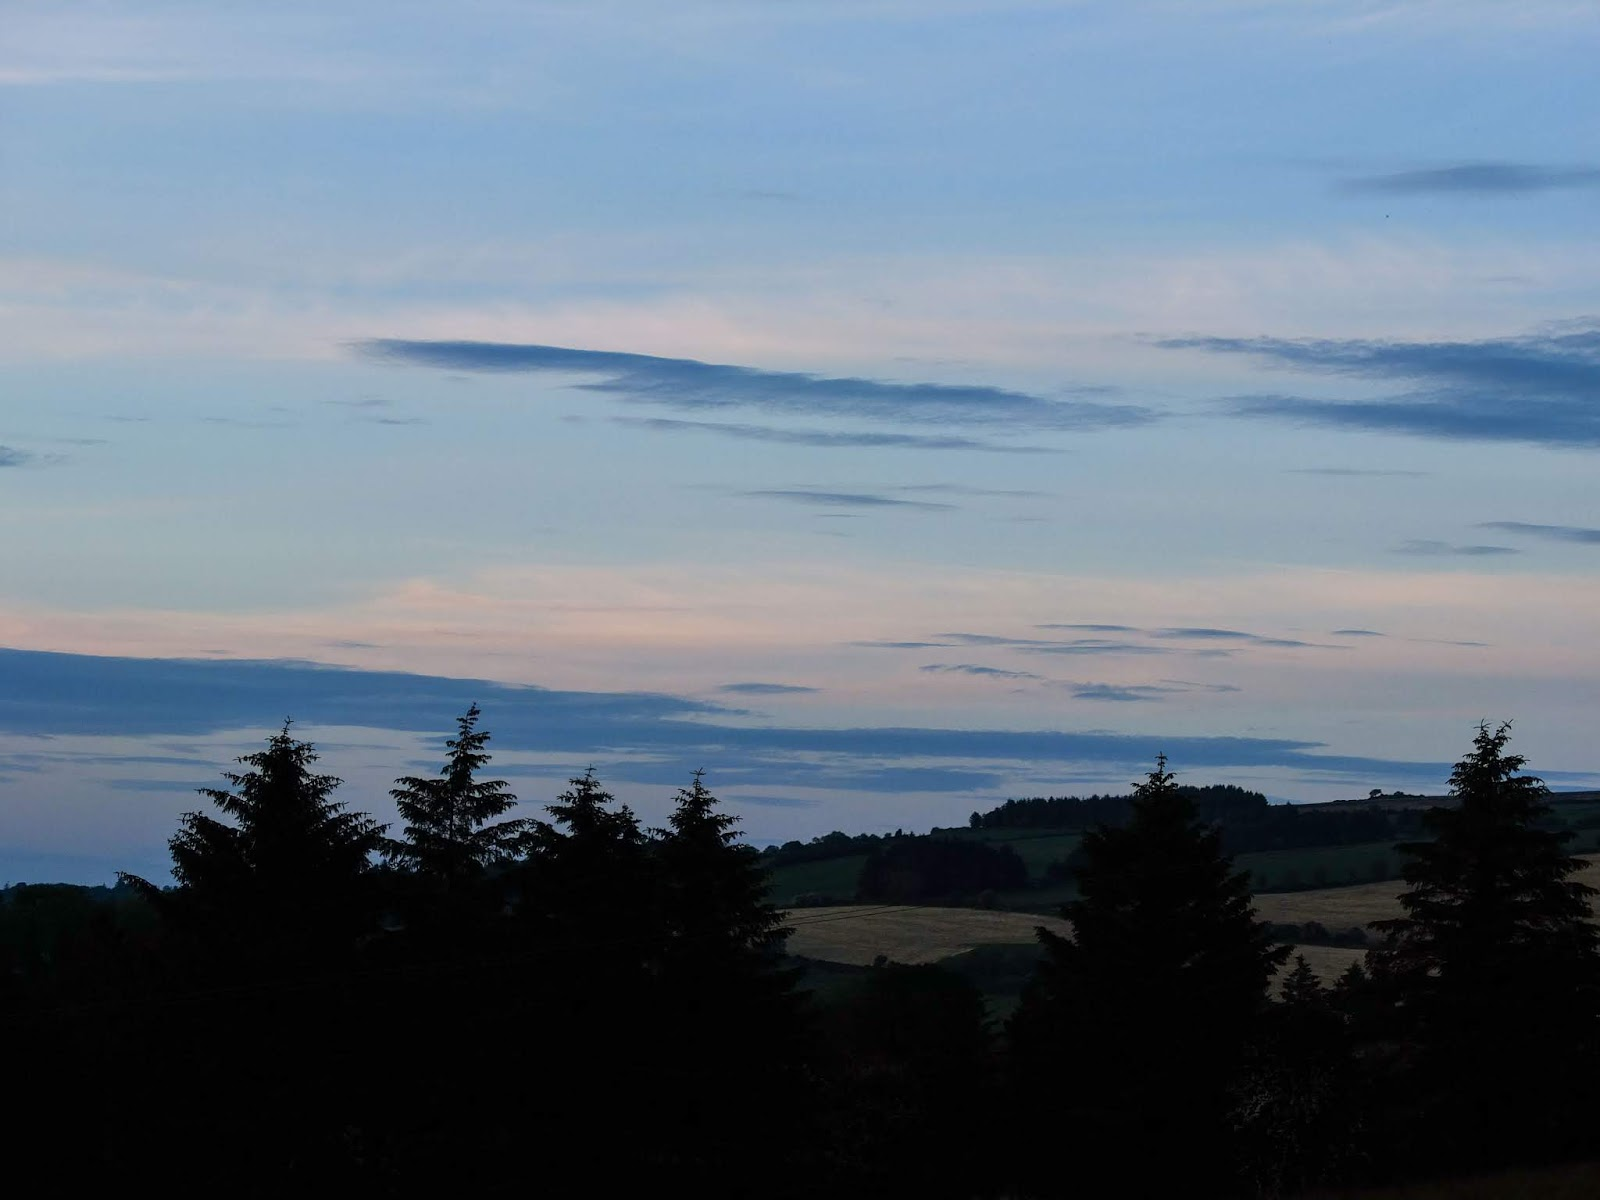 Fields and forestry in the Boggeragh Mountains at dusk.